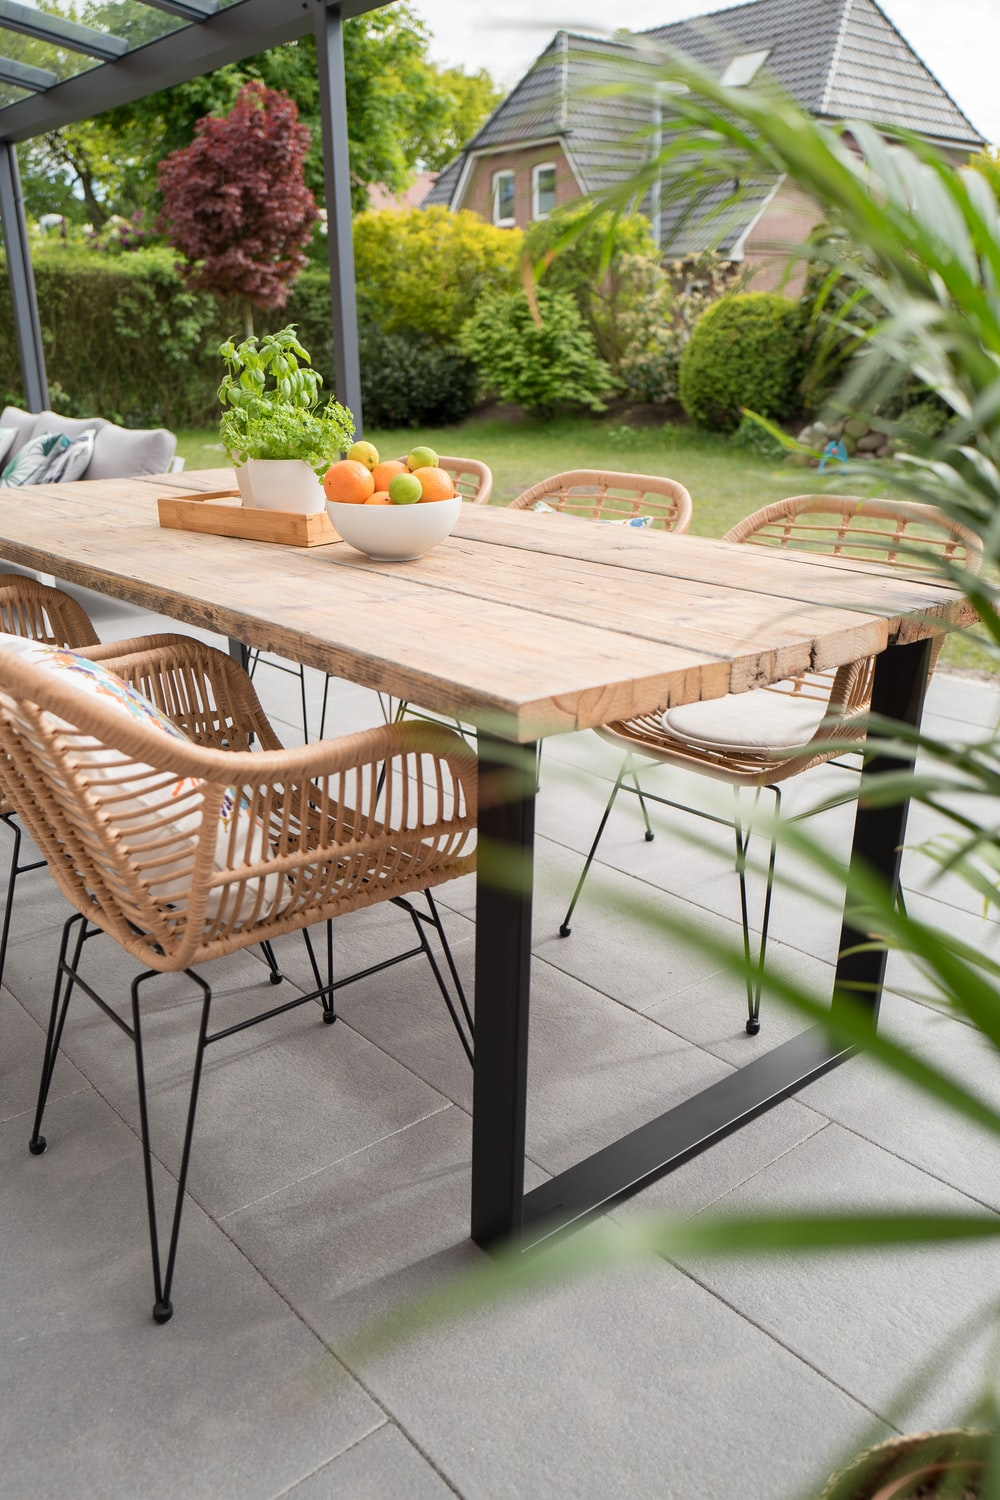 Garden Table Pictures  Download Free Images on Unsplash